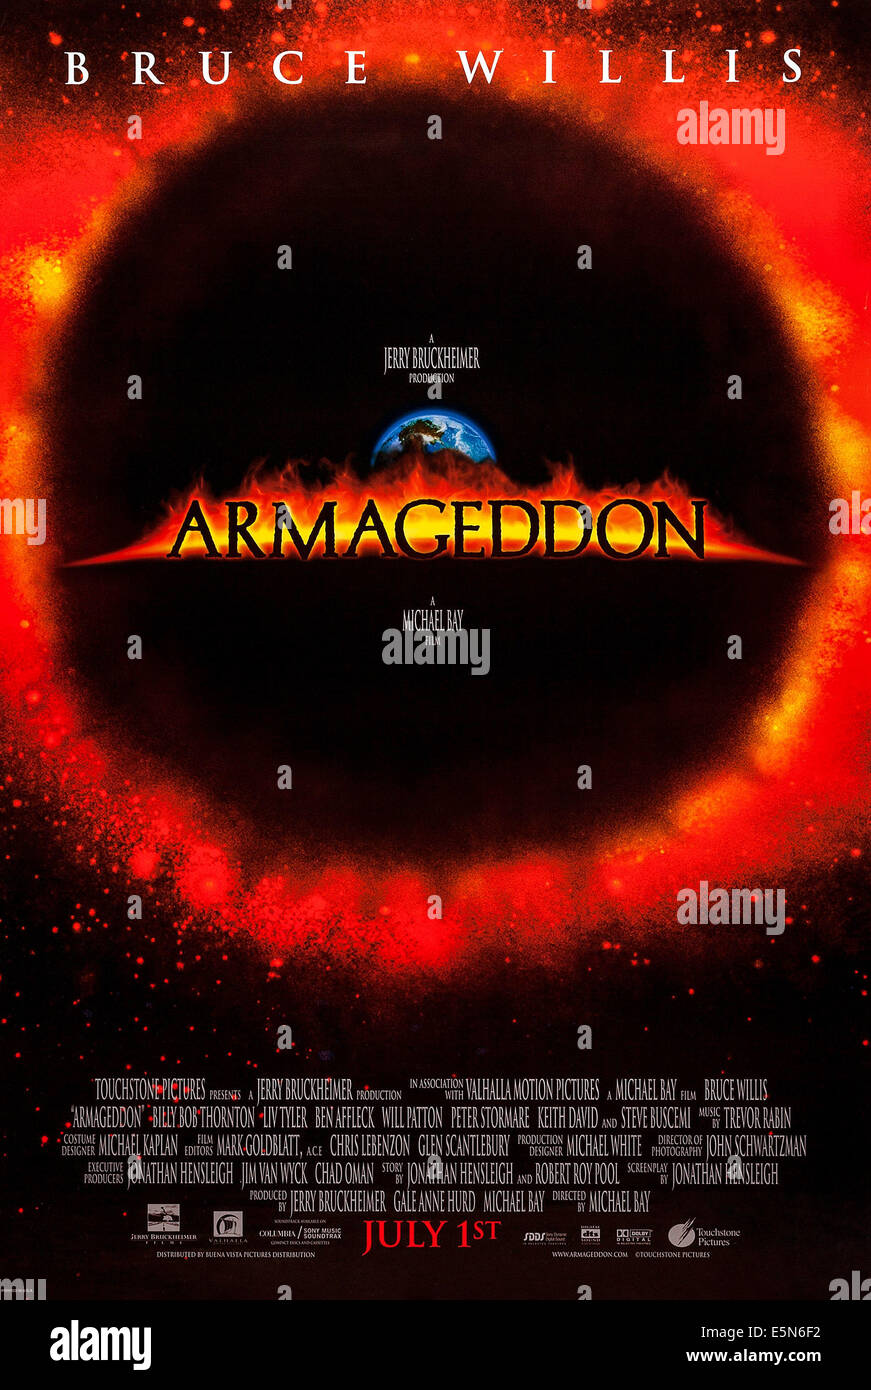 ARMAGEDDON, US advance  poster, 1998. ©Buena Vista Pictures/courtesy Everett Collection - Stock Image